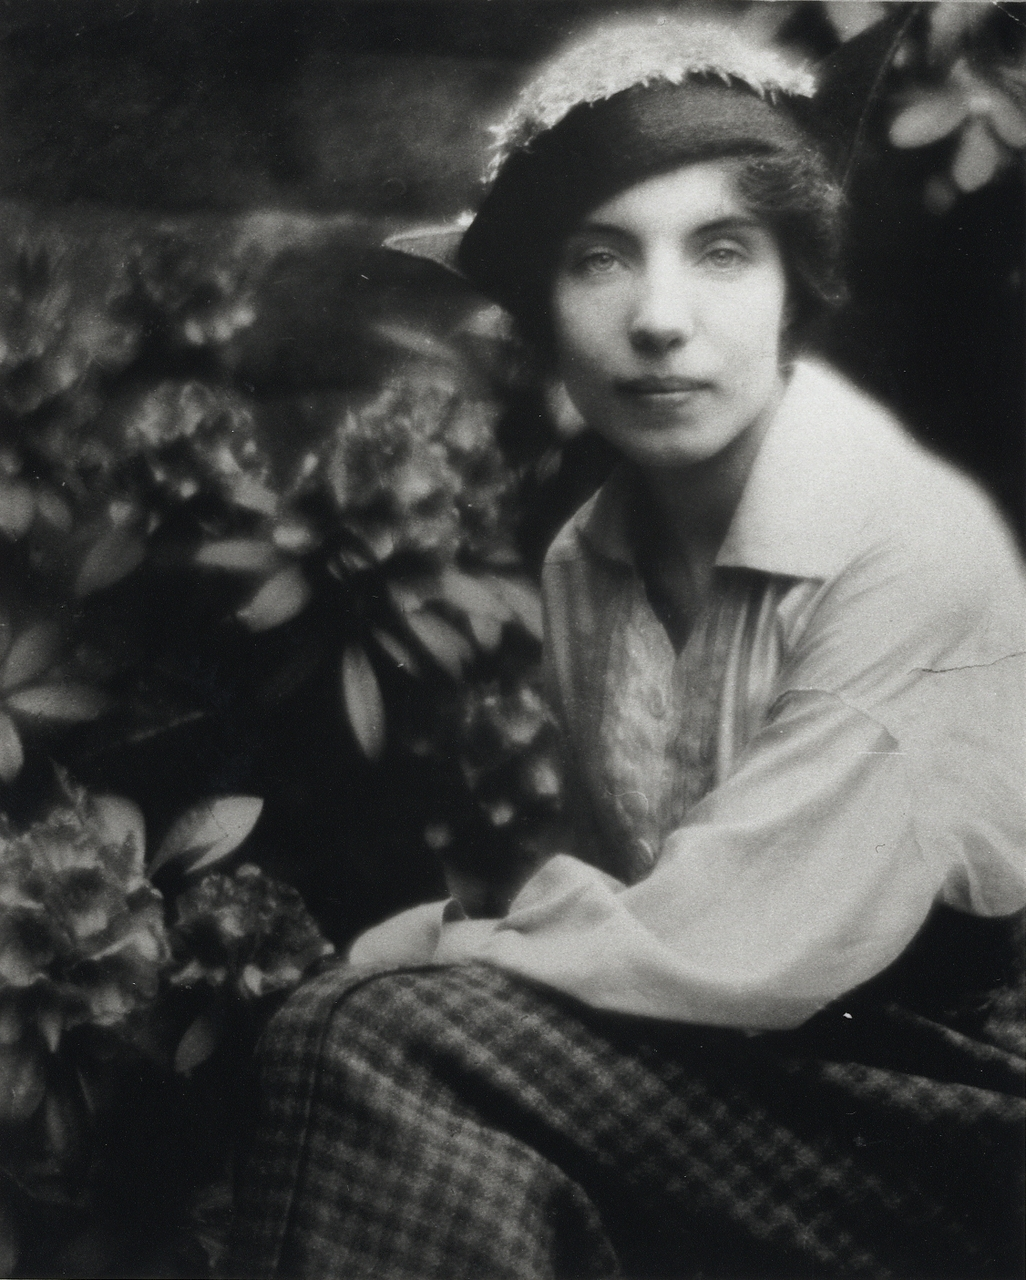 image for Allendy, Yvonne (1890-1935)